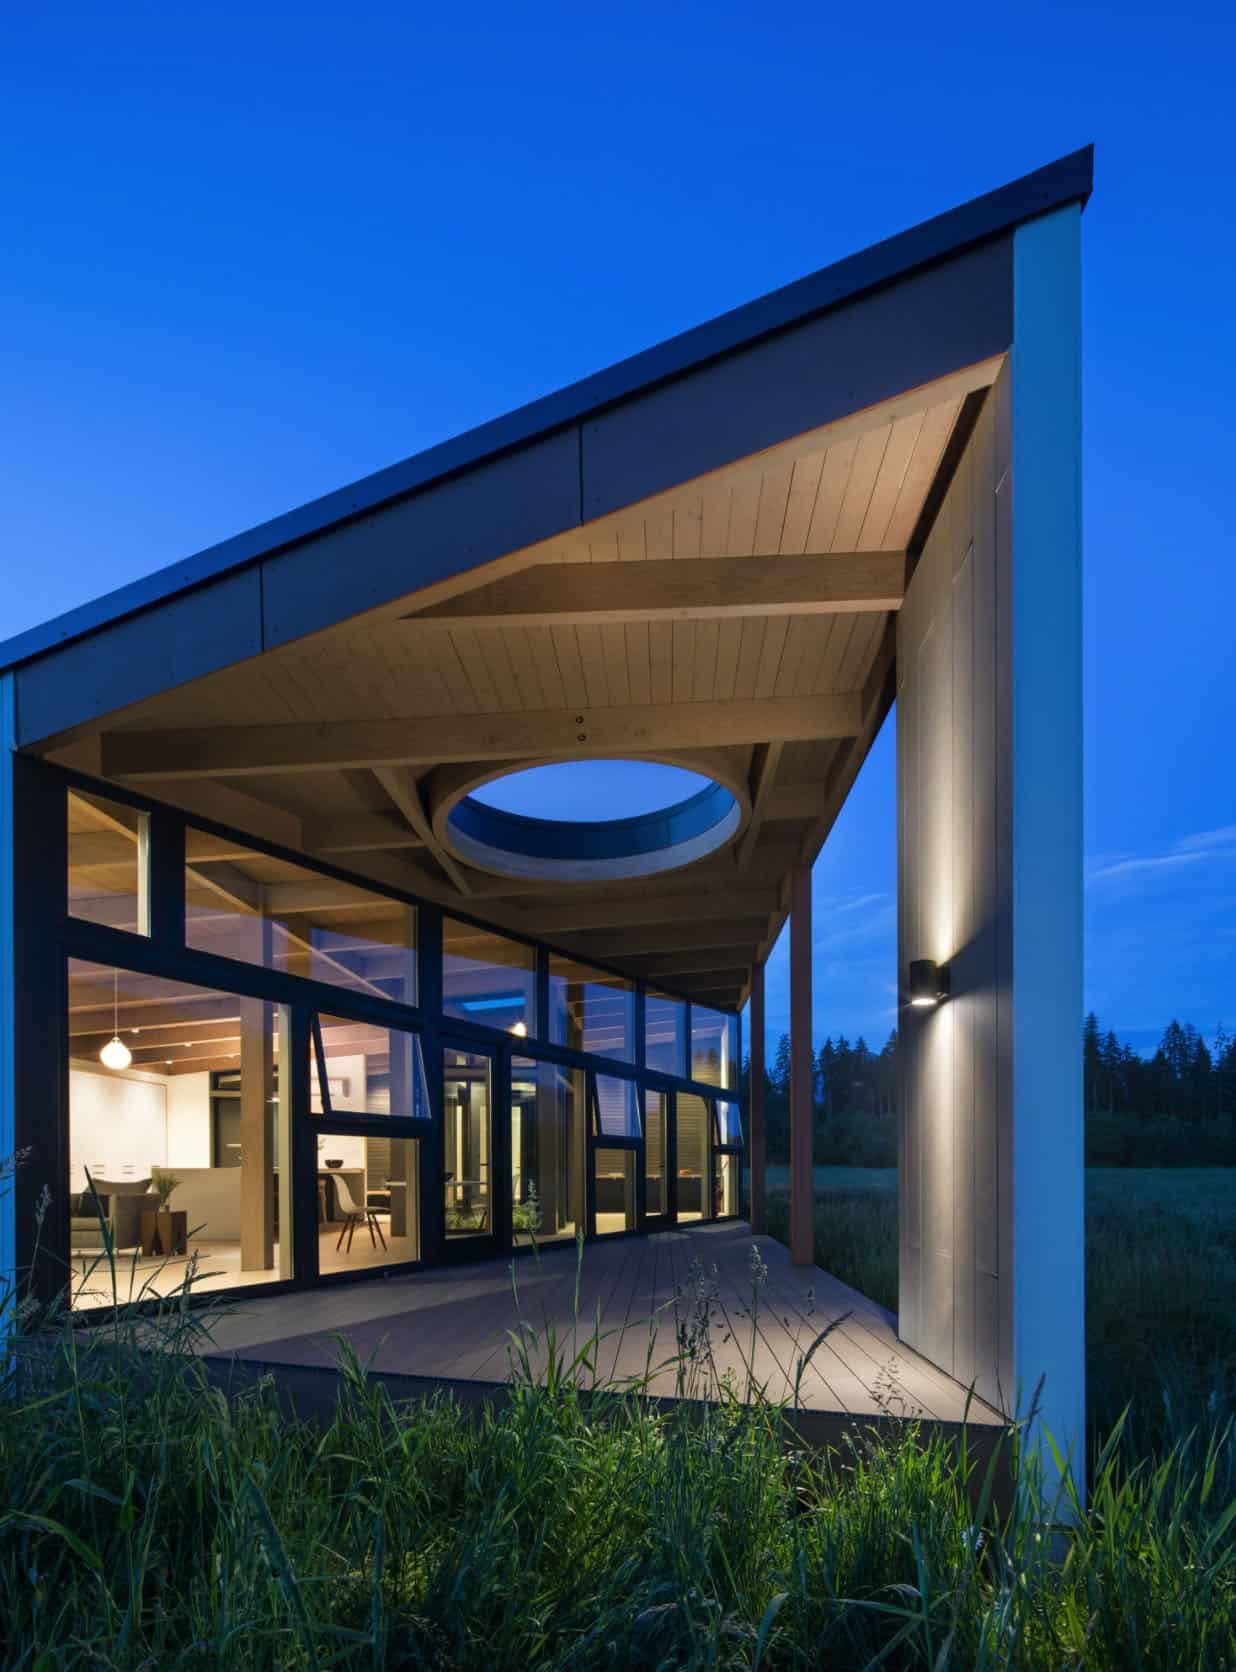 porch-at-dusk-modern-house-exterior